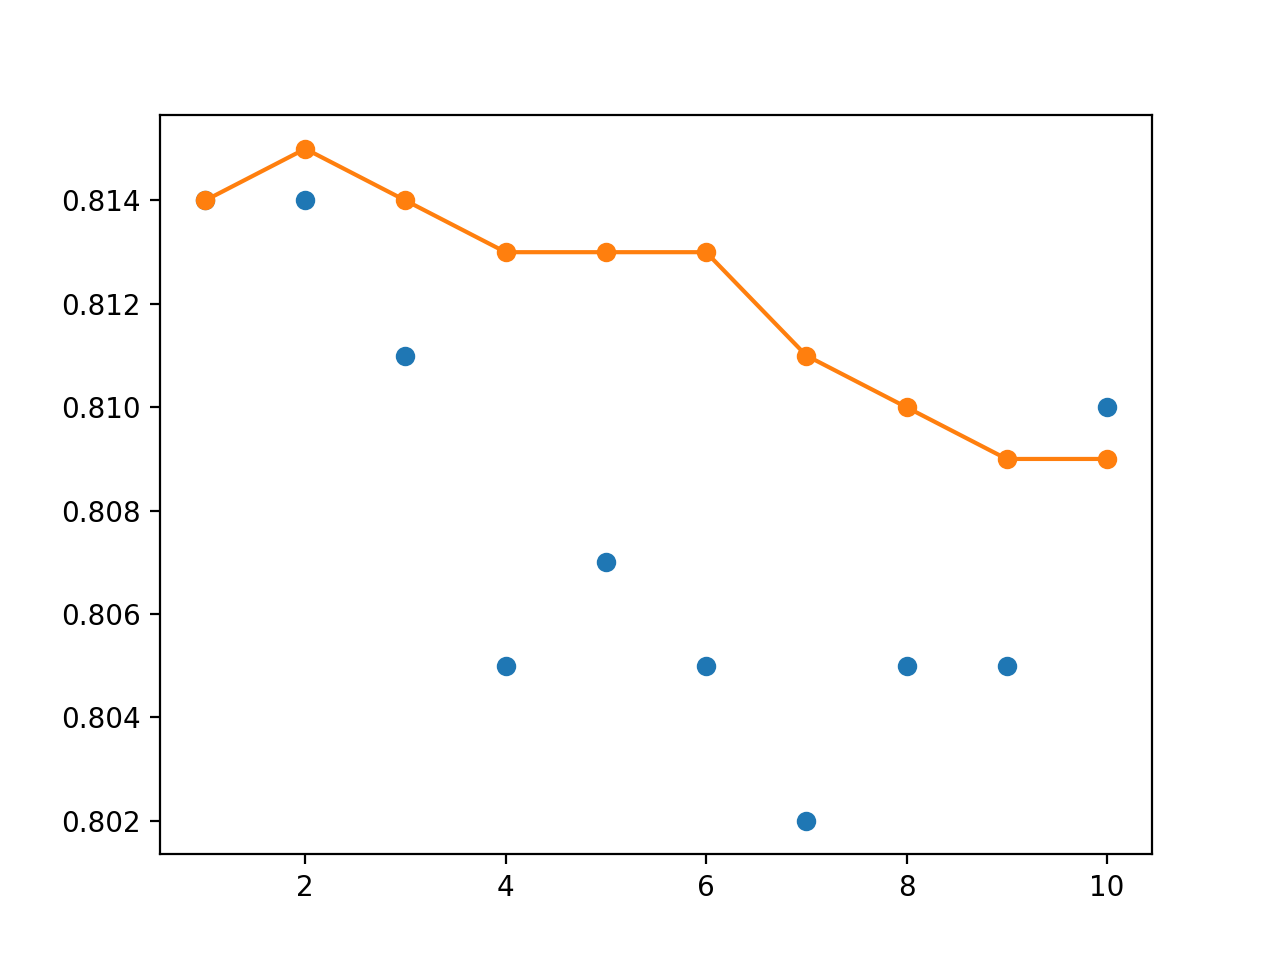 Line Plot of Single Model Test Performance (blue dots) and Model Weight Ensemble Test Performance (orange line) With a Linear Decay